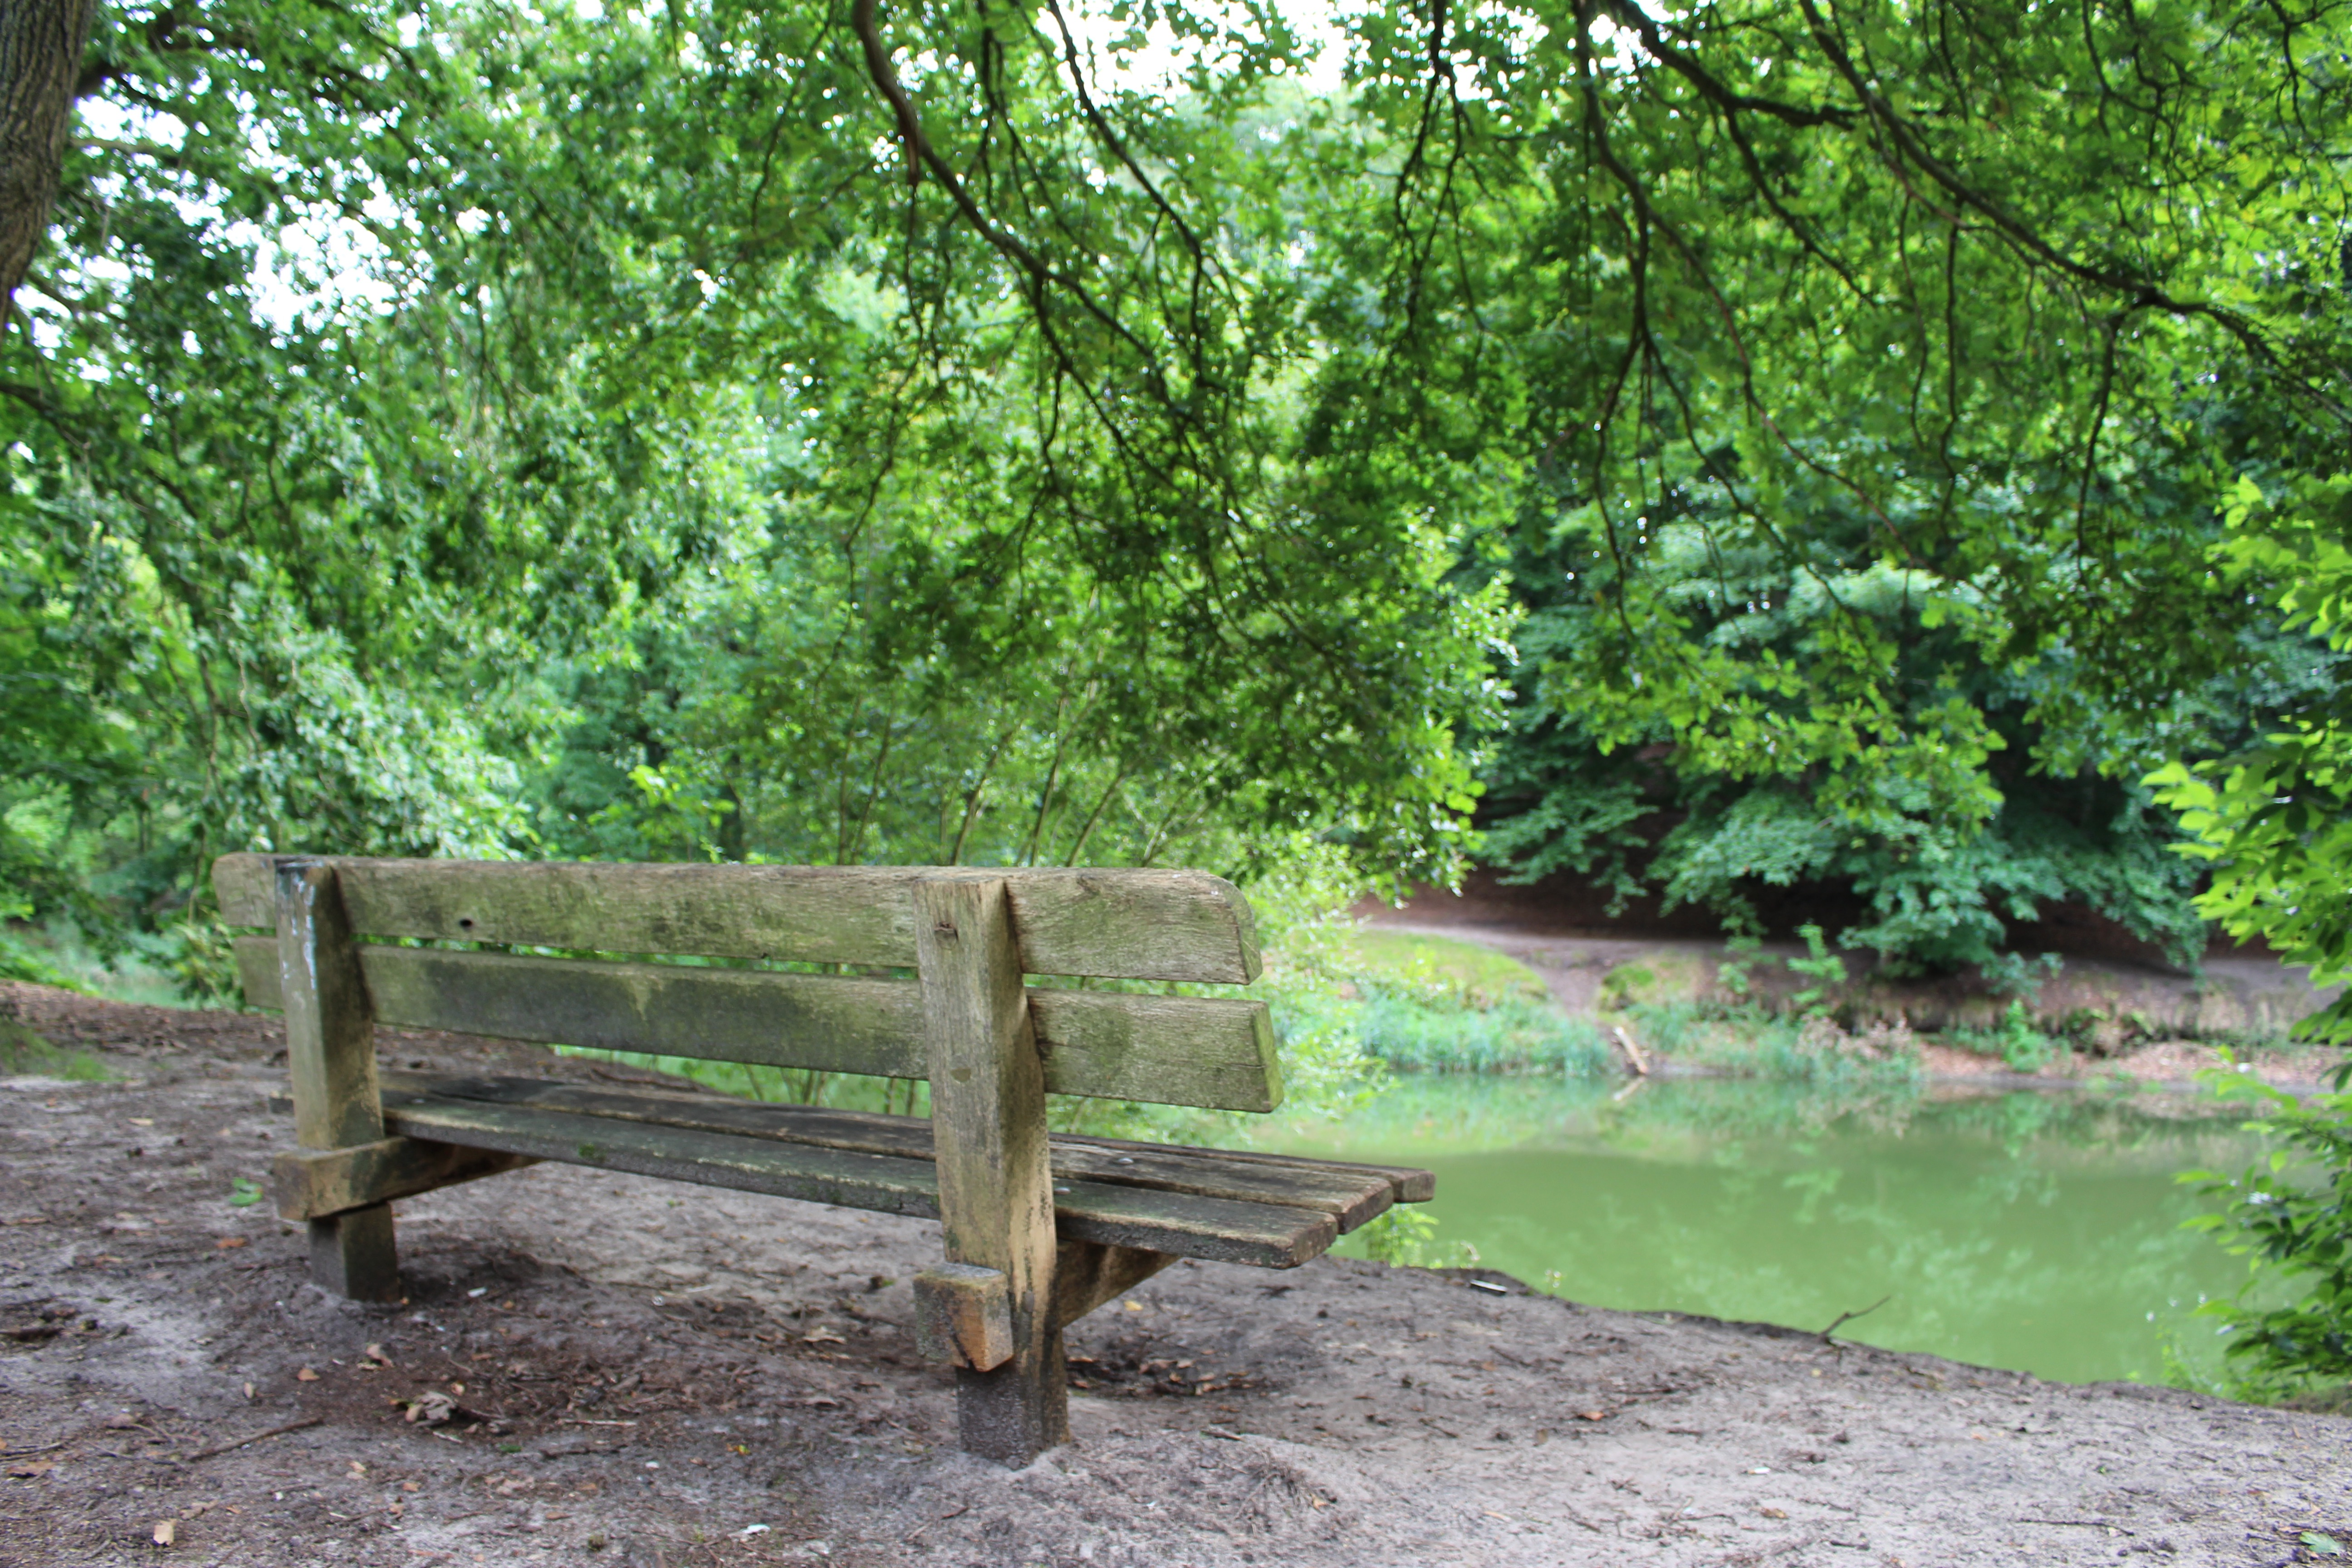 Bench in forest, 700d, Planks, Wood, Water, HQ Photo